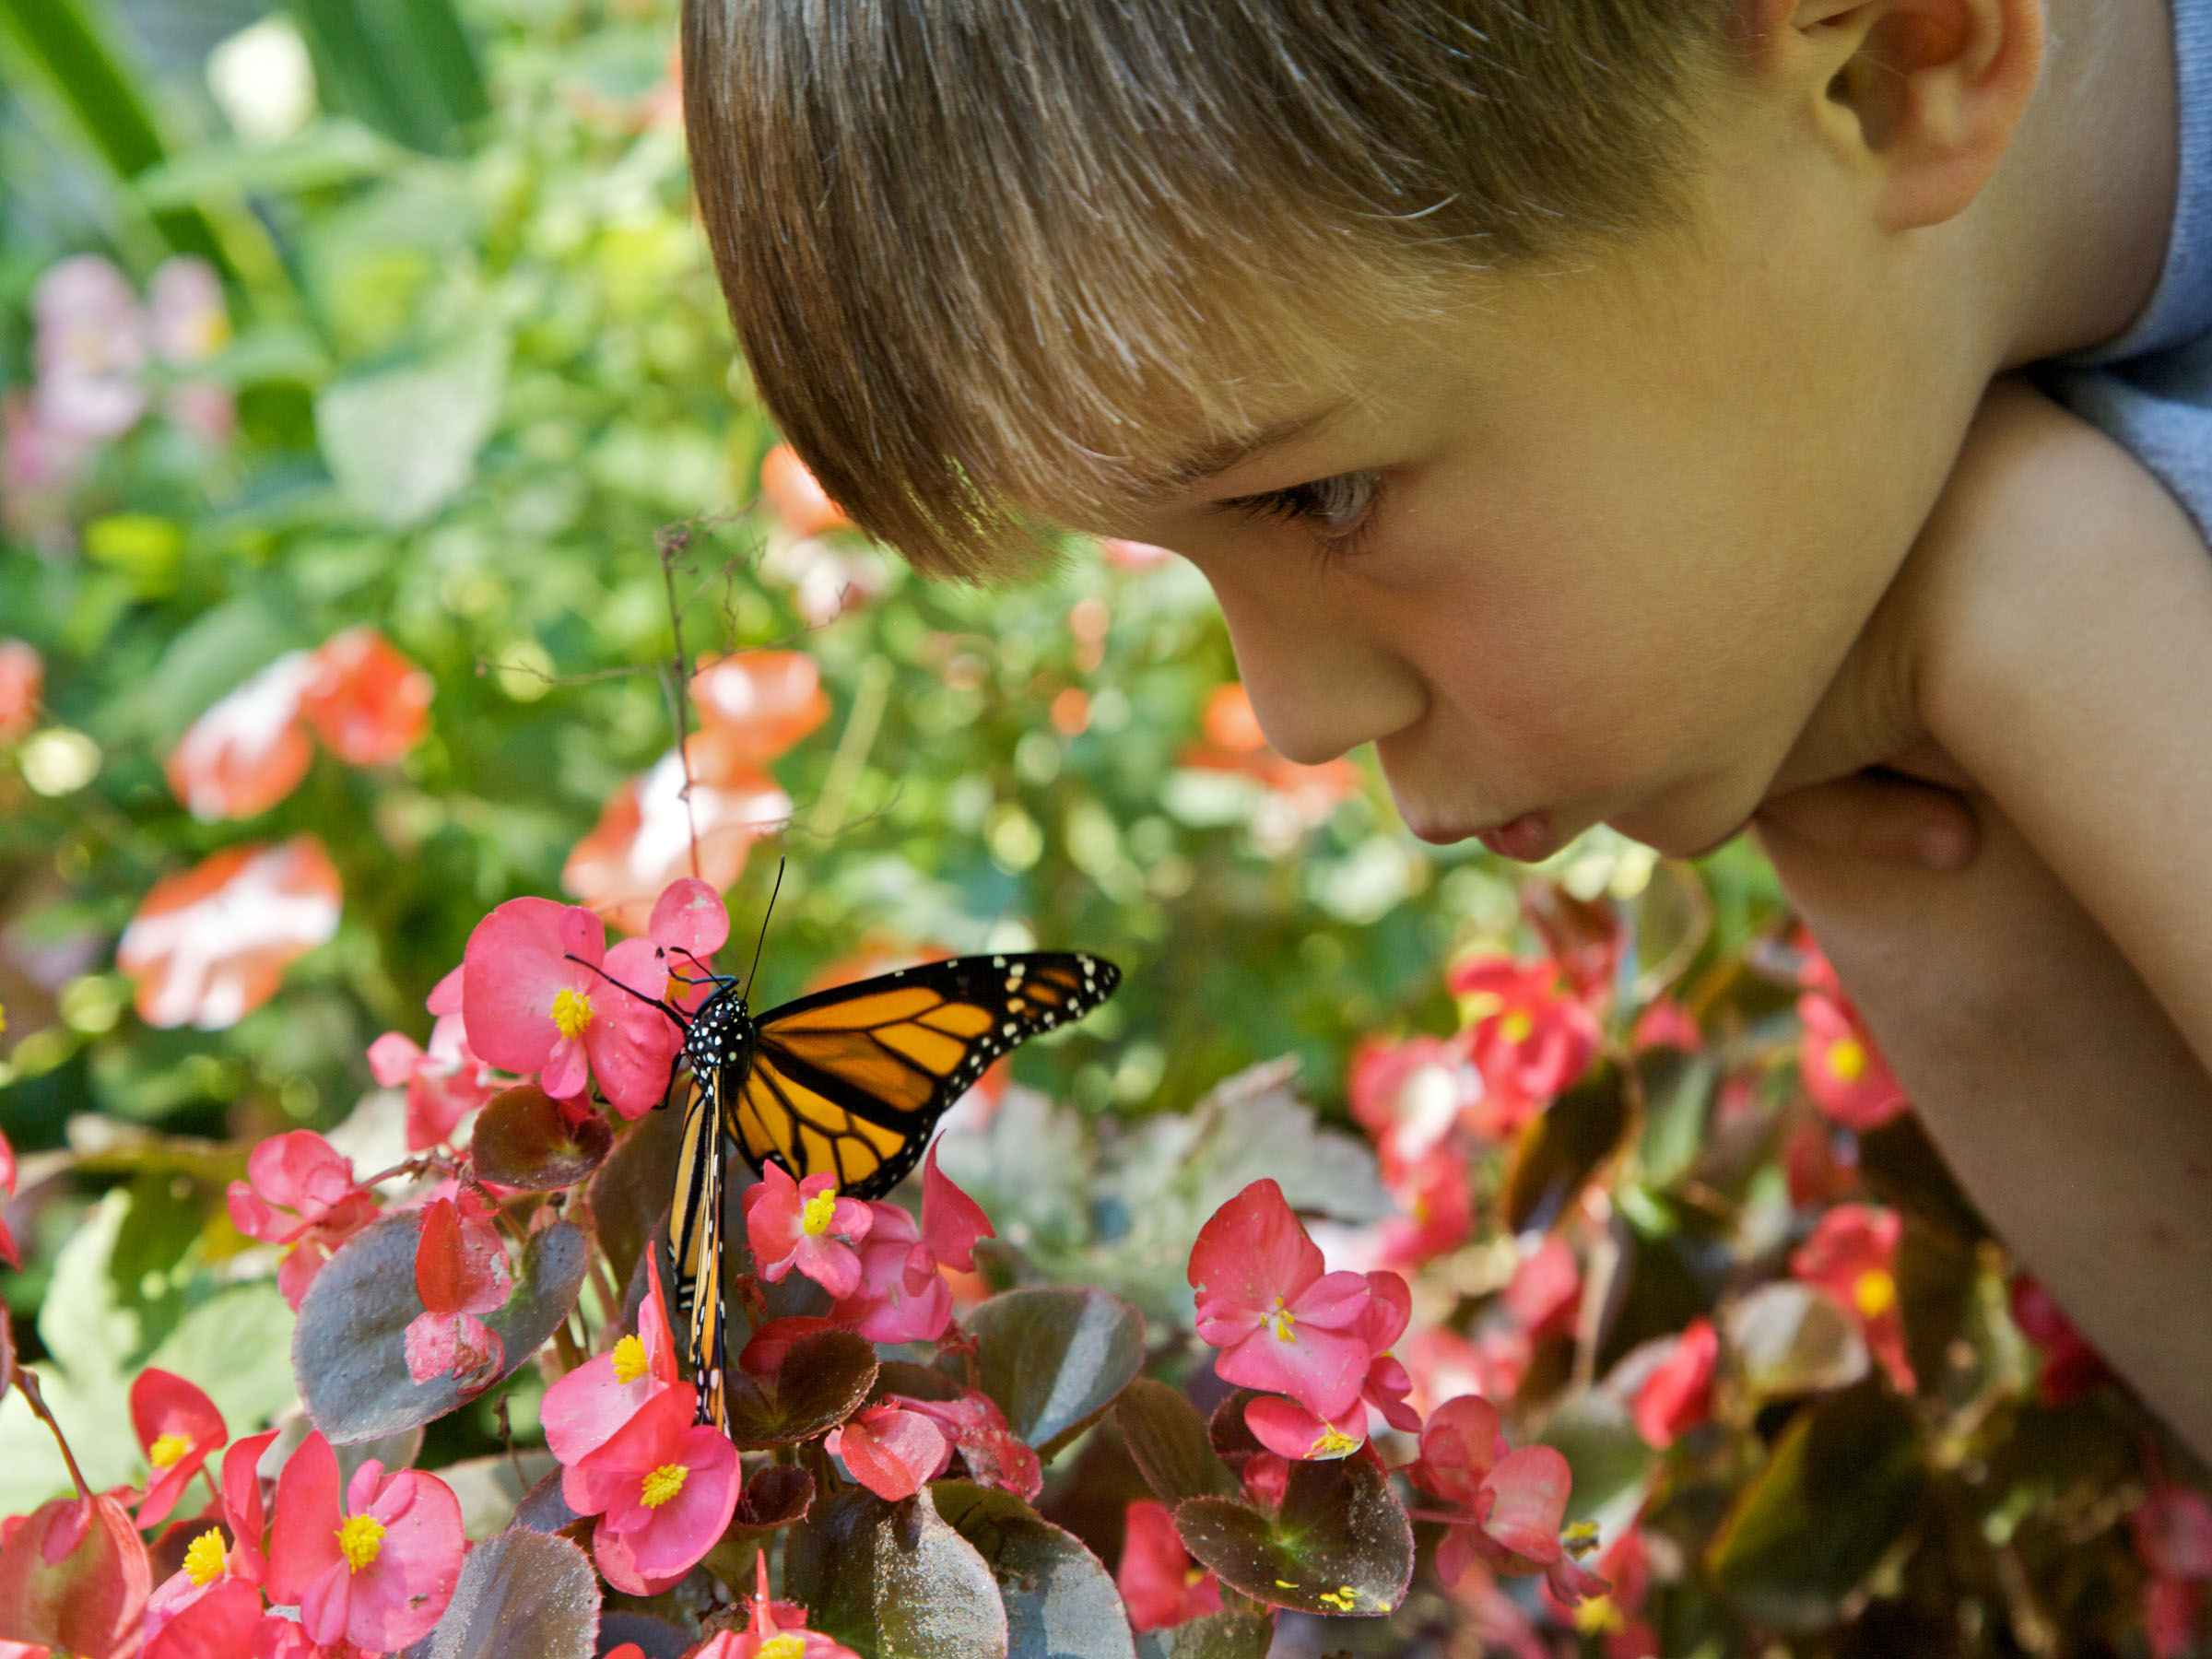 Children S Nature Centers In Massachusetts Within  Min Of Worcester